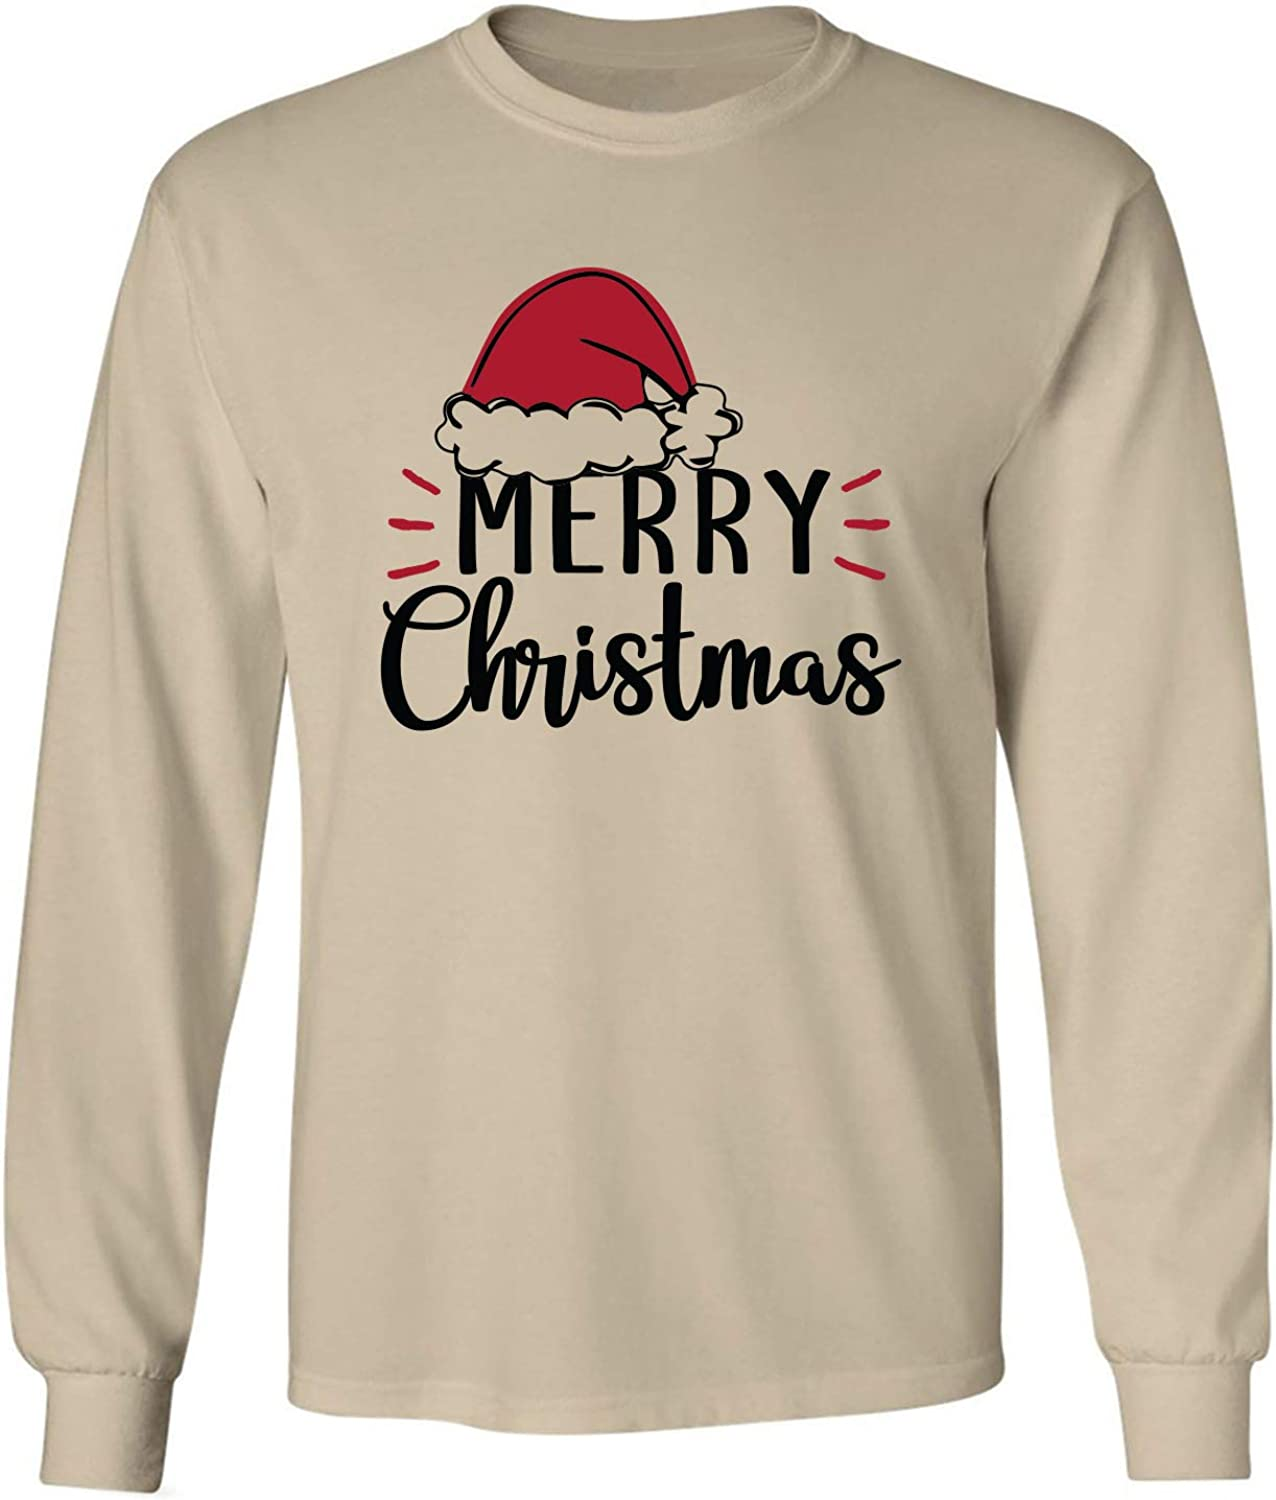 Merry Christmas Hat Adult Long Sleeve T-Shirt in Sand - XXXX-Large